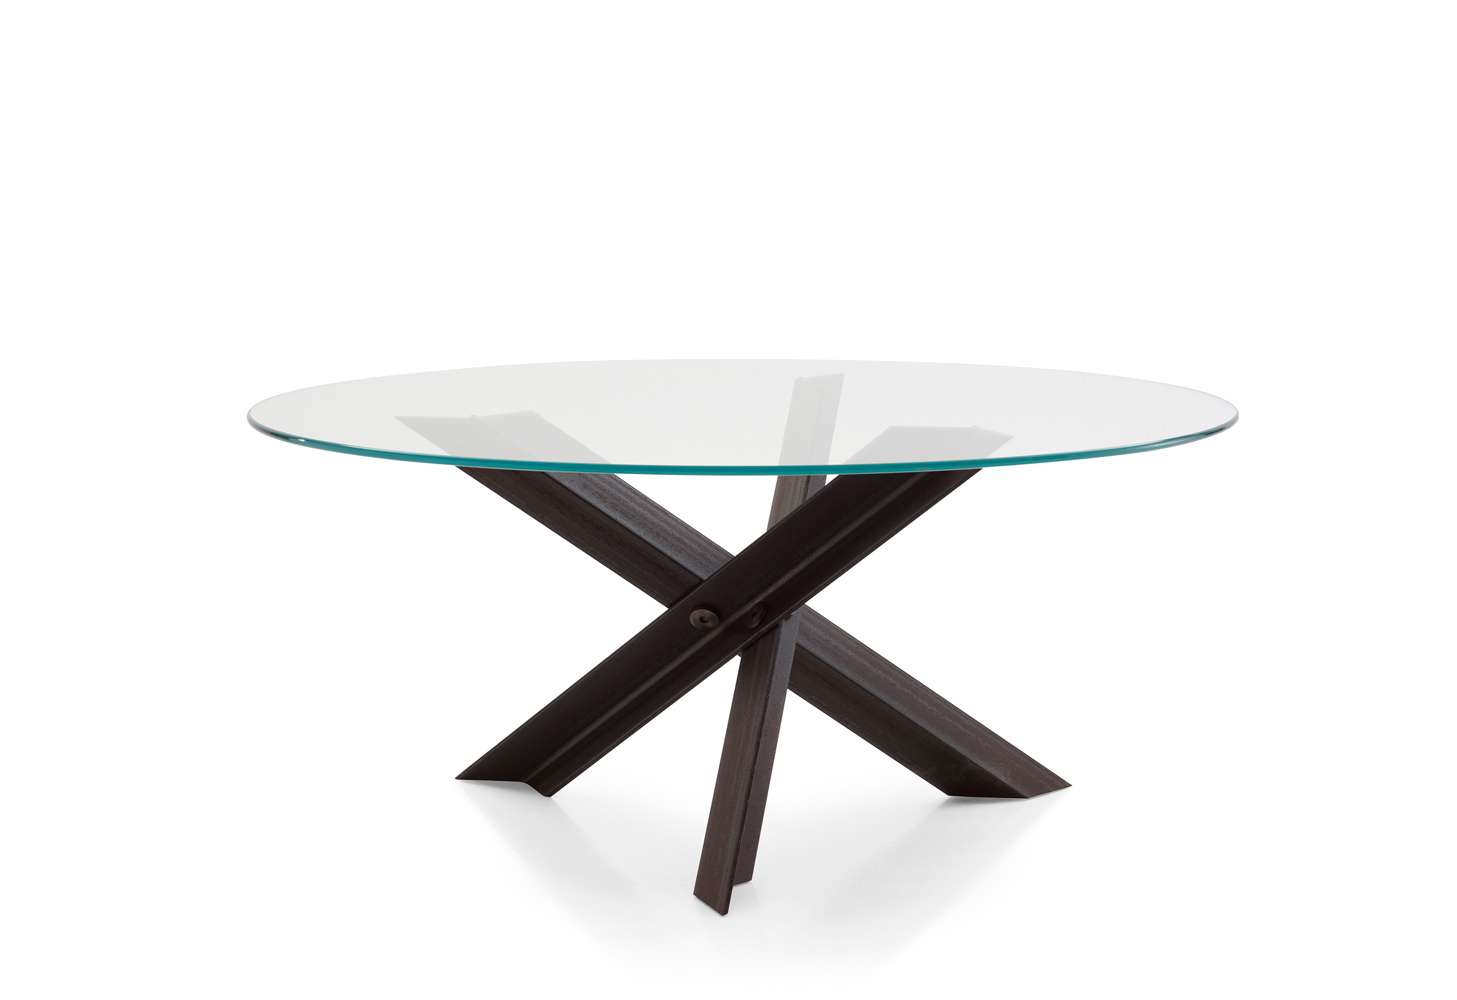 Mario-Bellini-Bolt-Table_01.jpg